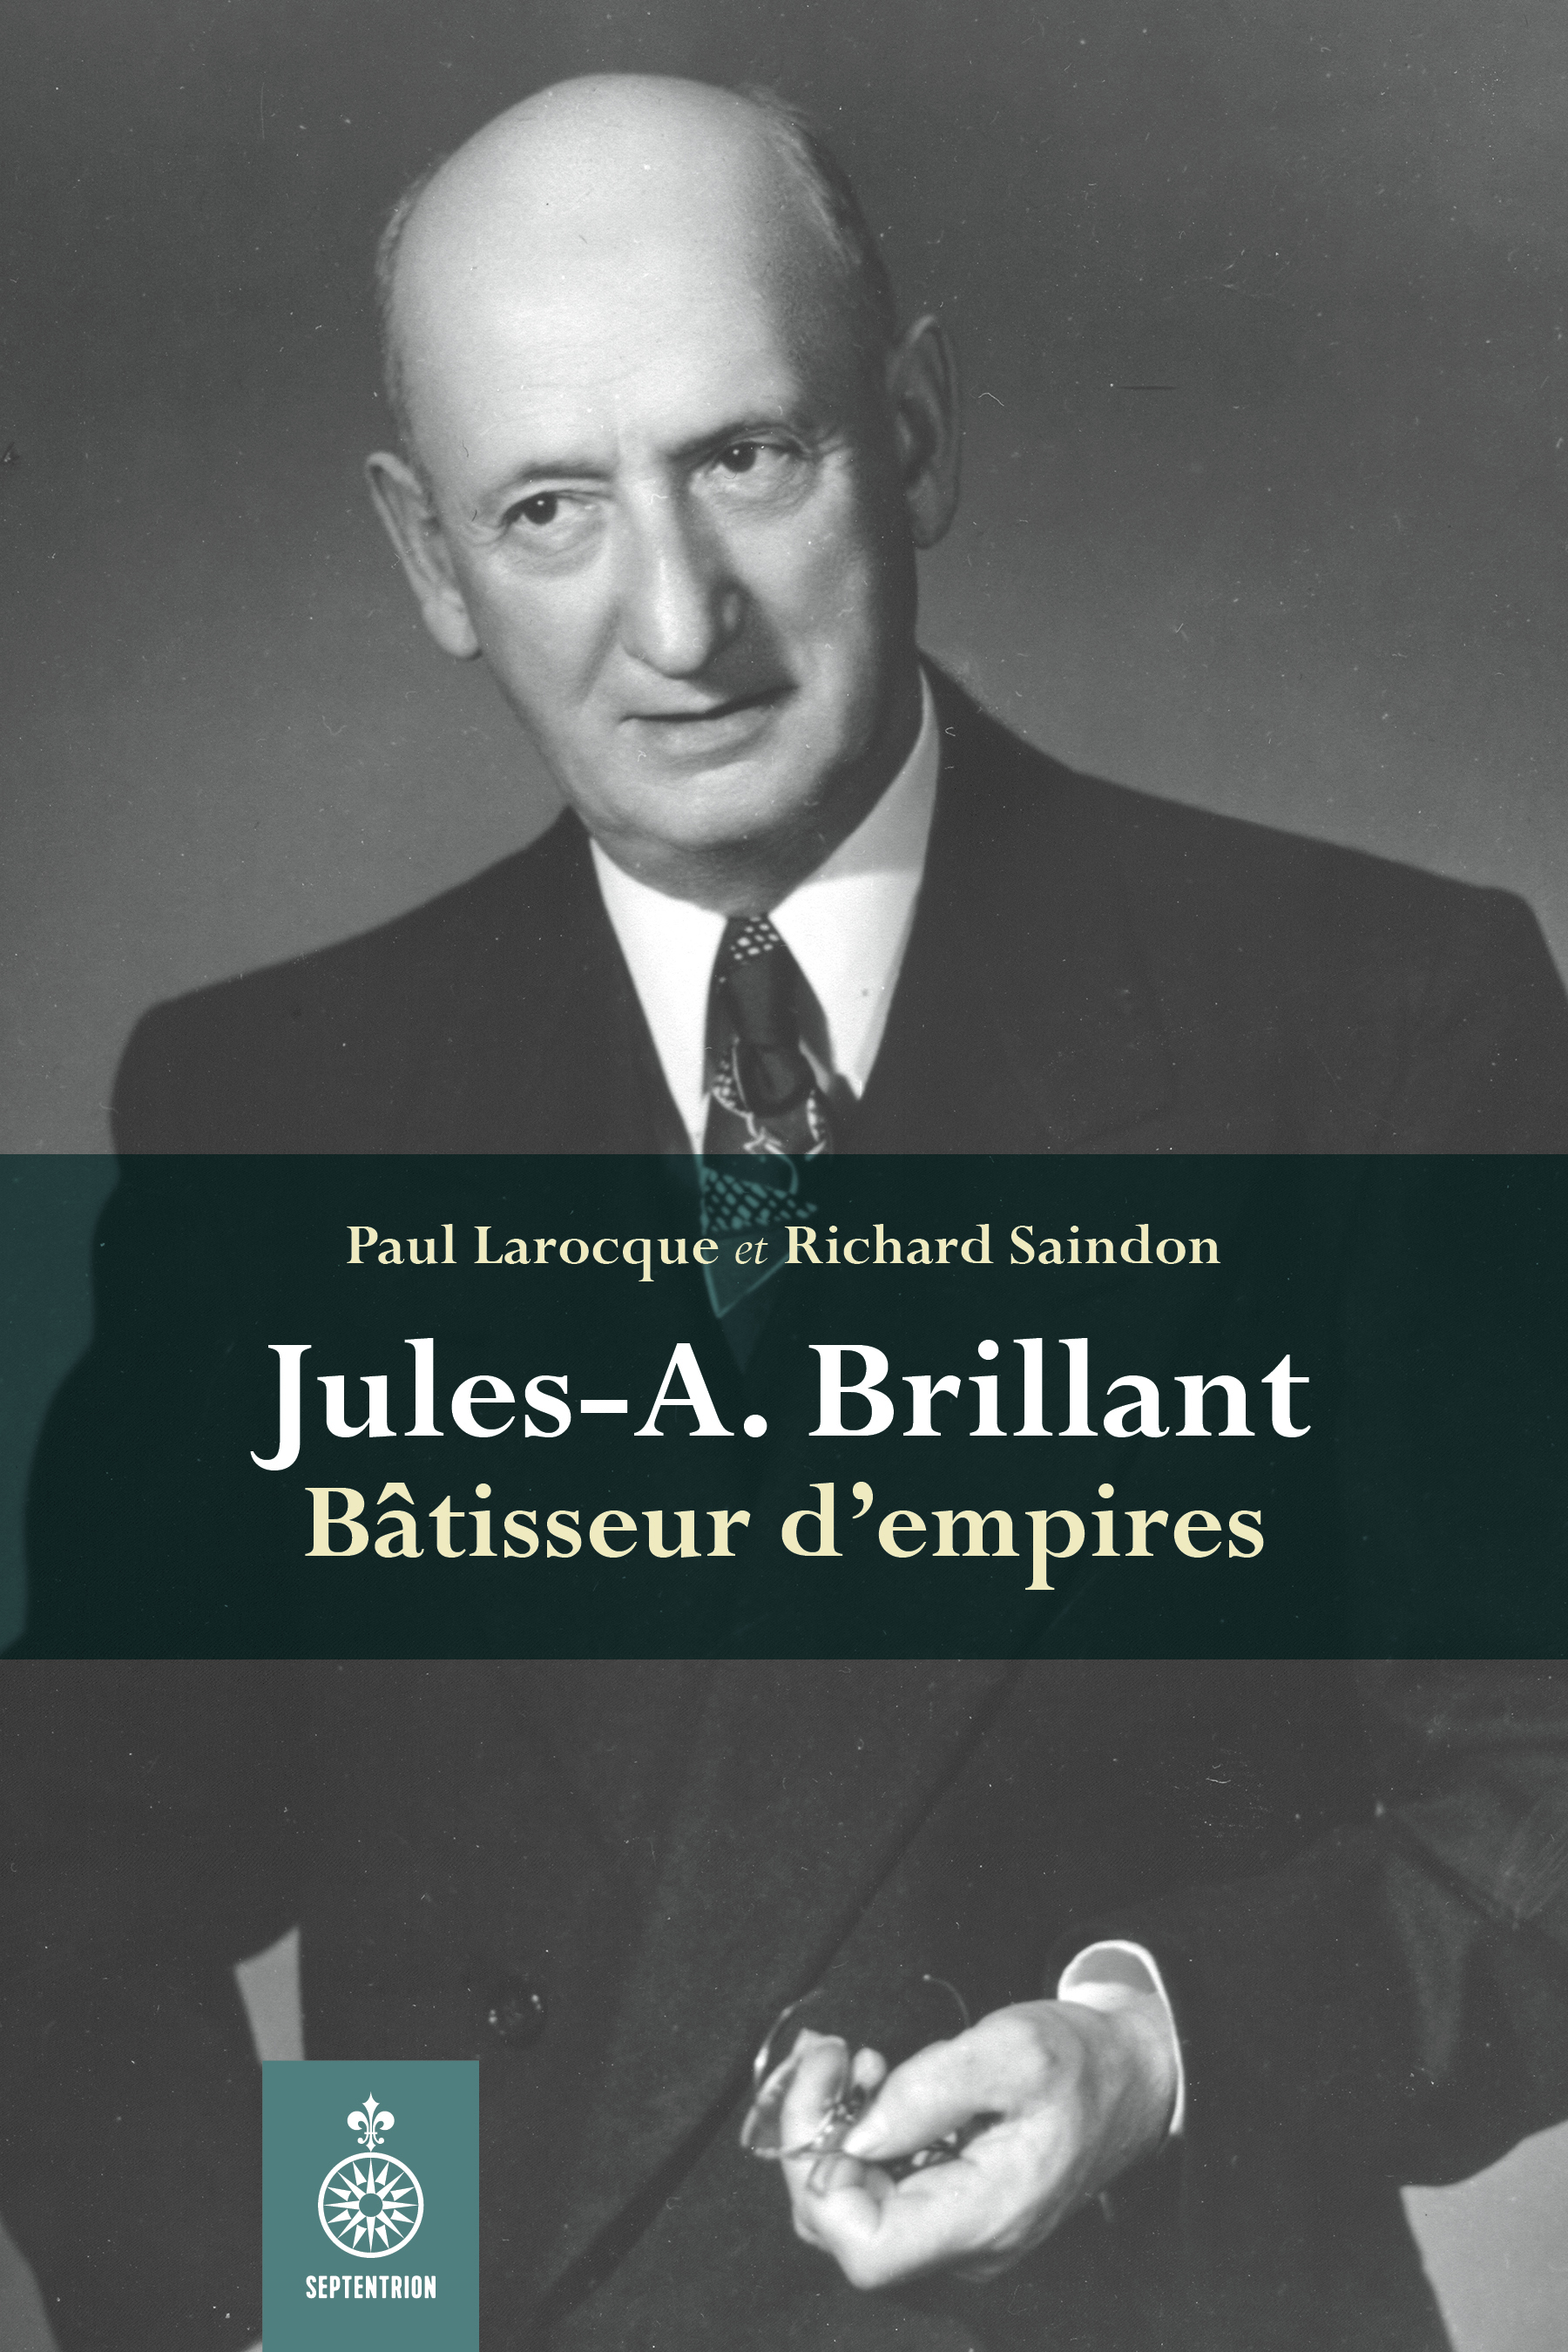 Vignette du livre Jules-A. Brillant : un homme, un empire - Paul Larocque, Richard Saindon